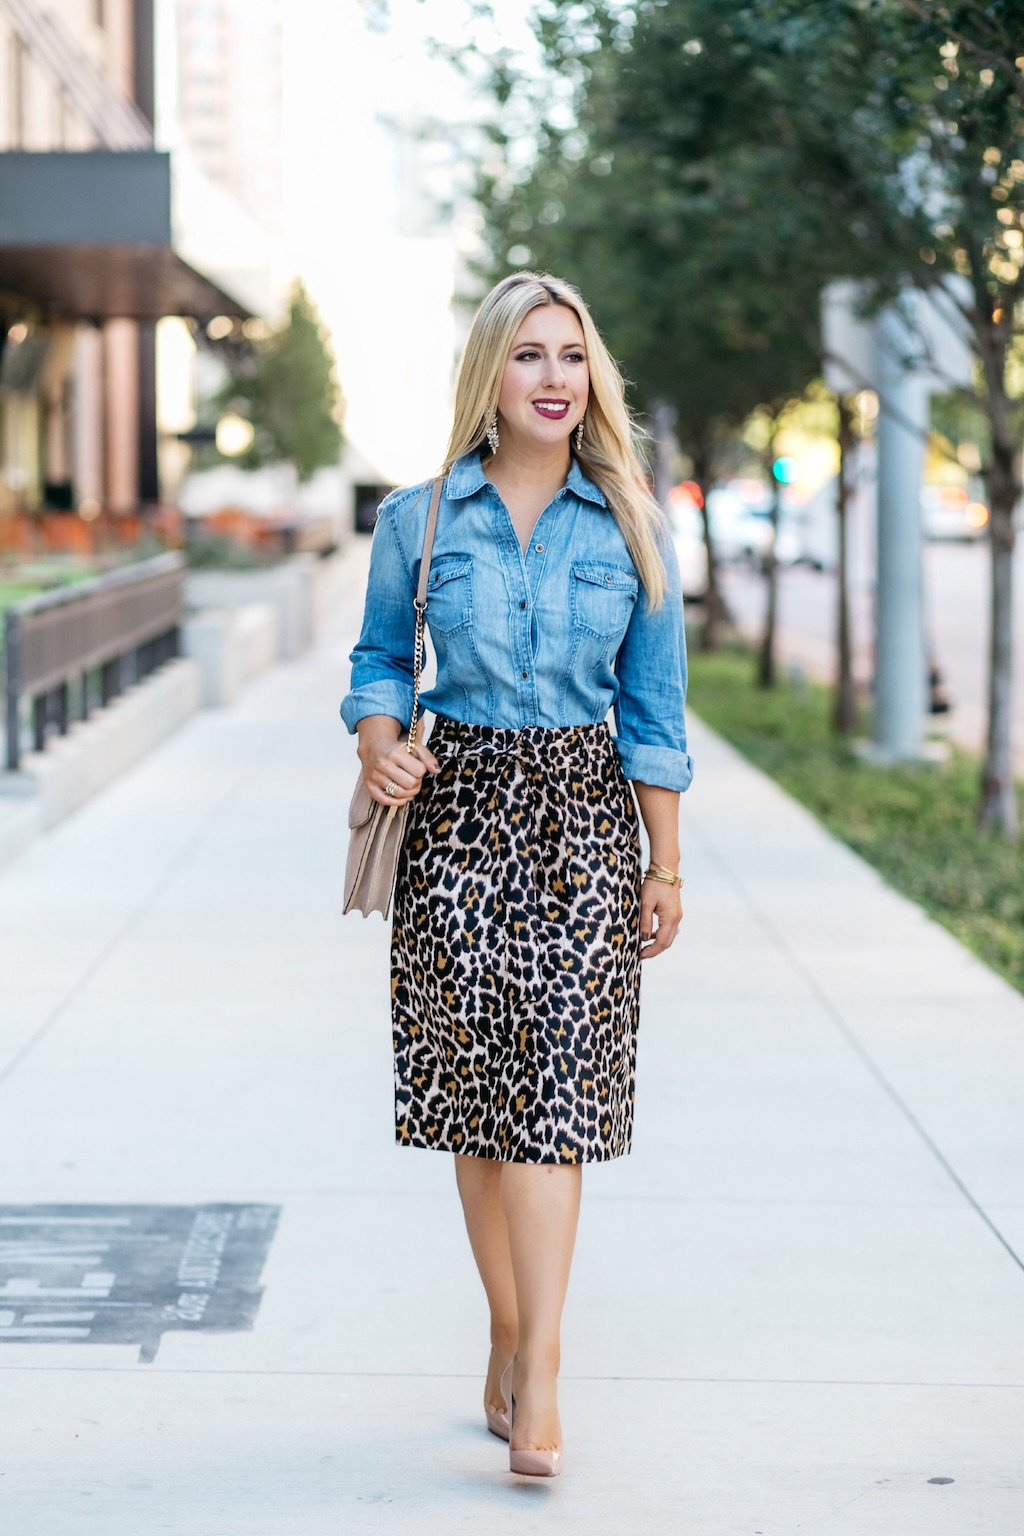 Fall Fashion | Leopard Print | Nicole Kirk